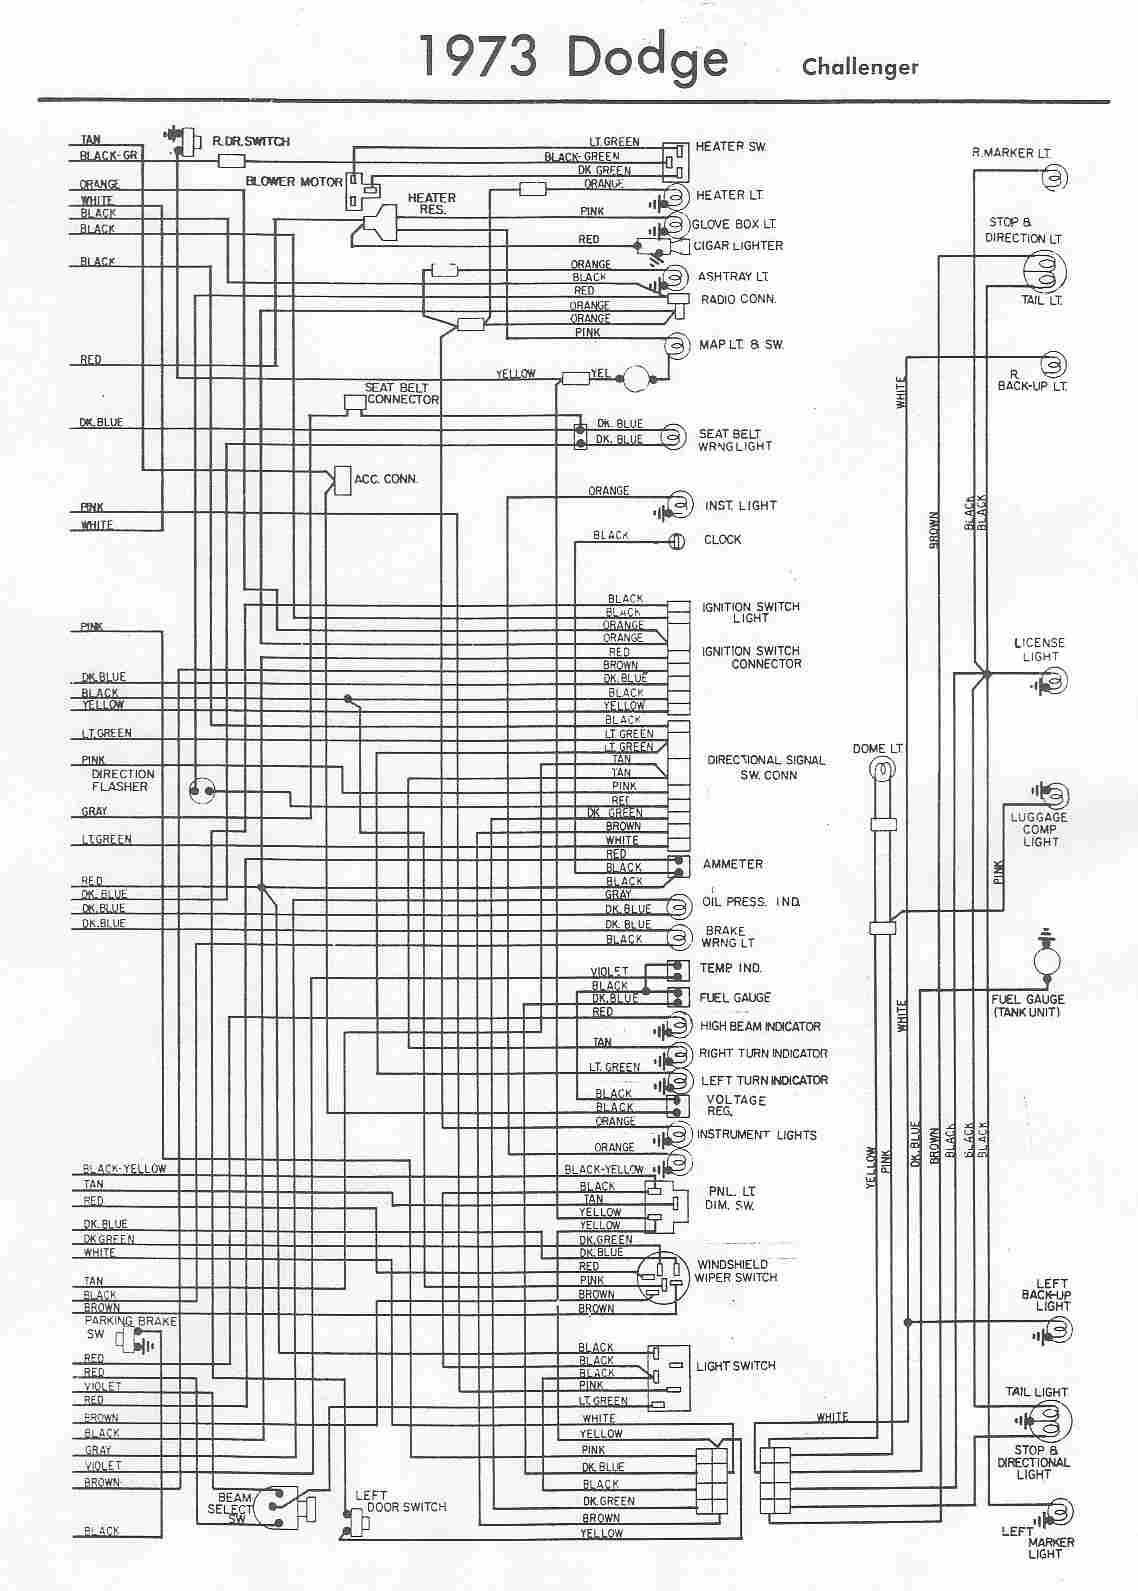 1973 Dodge Aspen Wiring Diagram Auto Electrical Harness For 2008 Chrysler Diagrams Concorde 1964 Coronet 1974 Dart Turn Signal